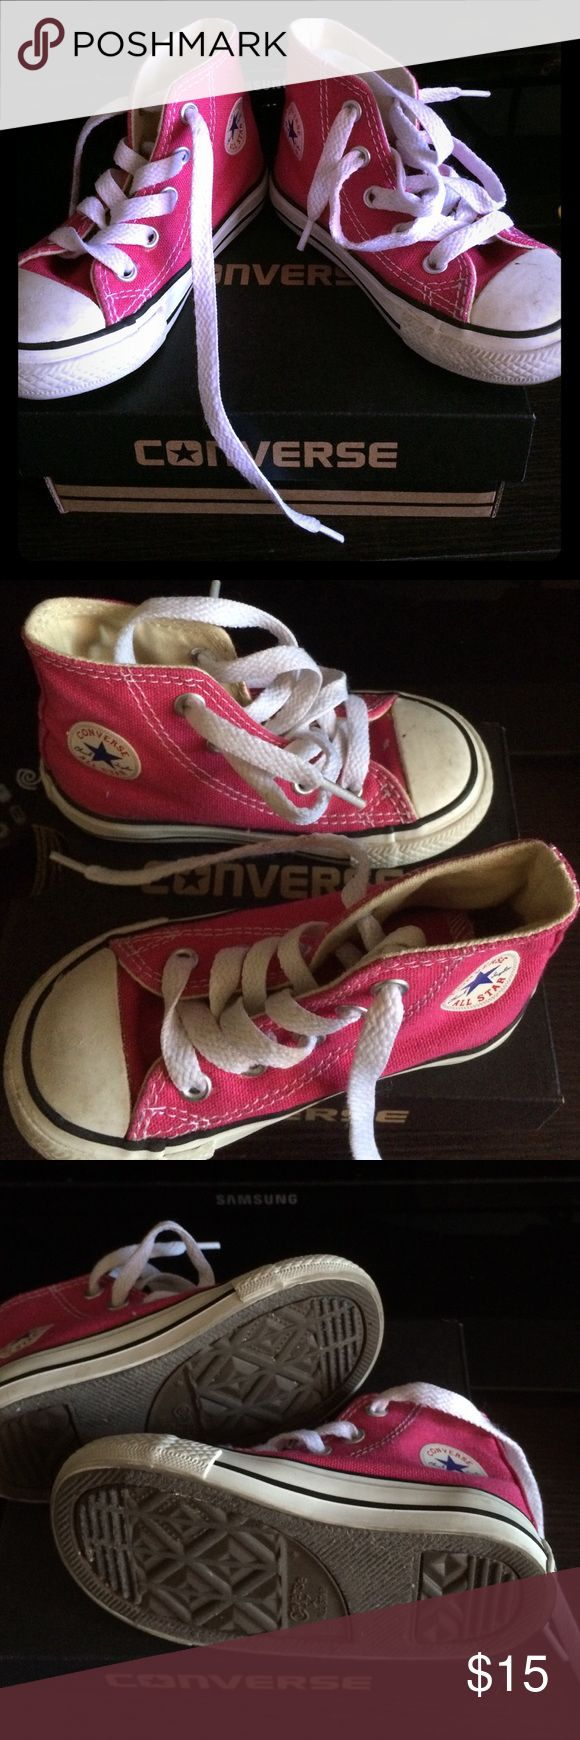 Used Converse for kids size 6 in hot pink Used Converse for kids size 6 toddler in hot pink Converse Shoes Sneakers